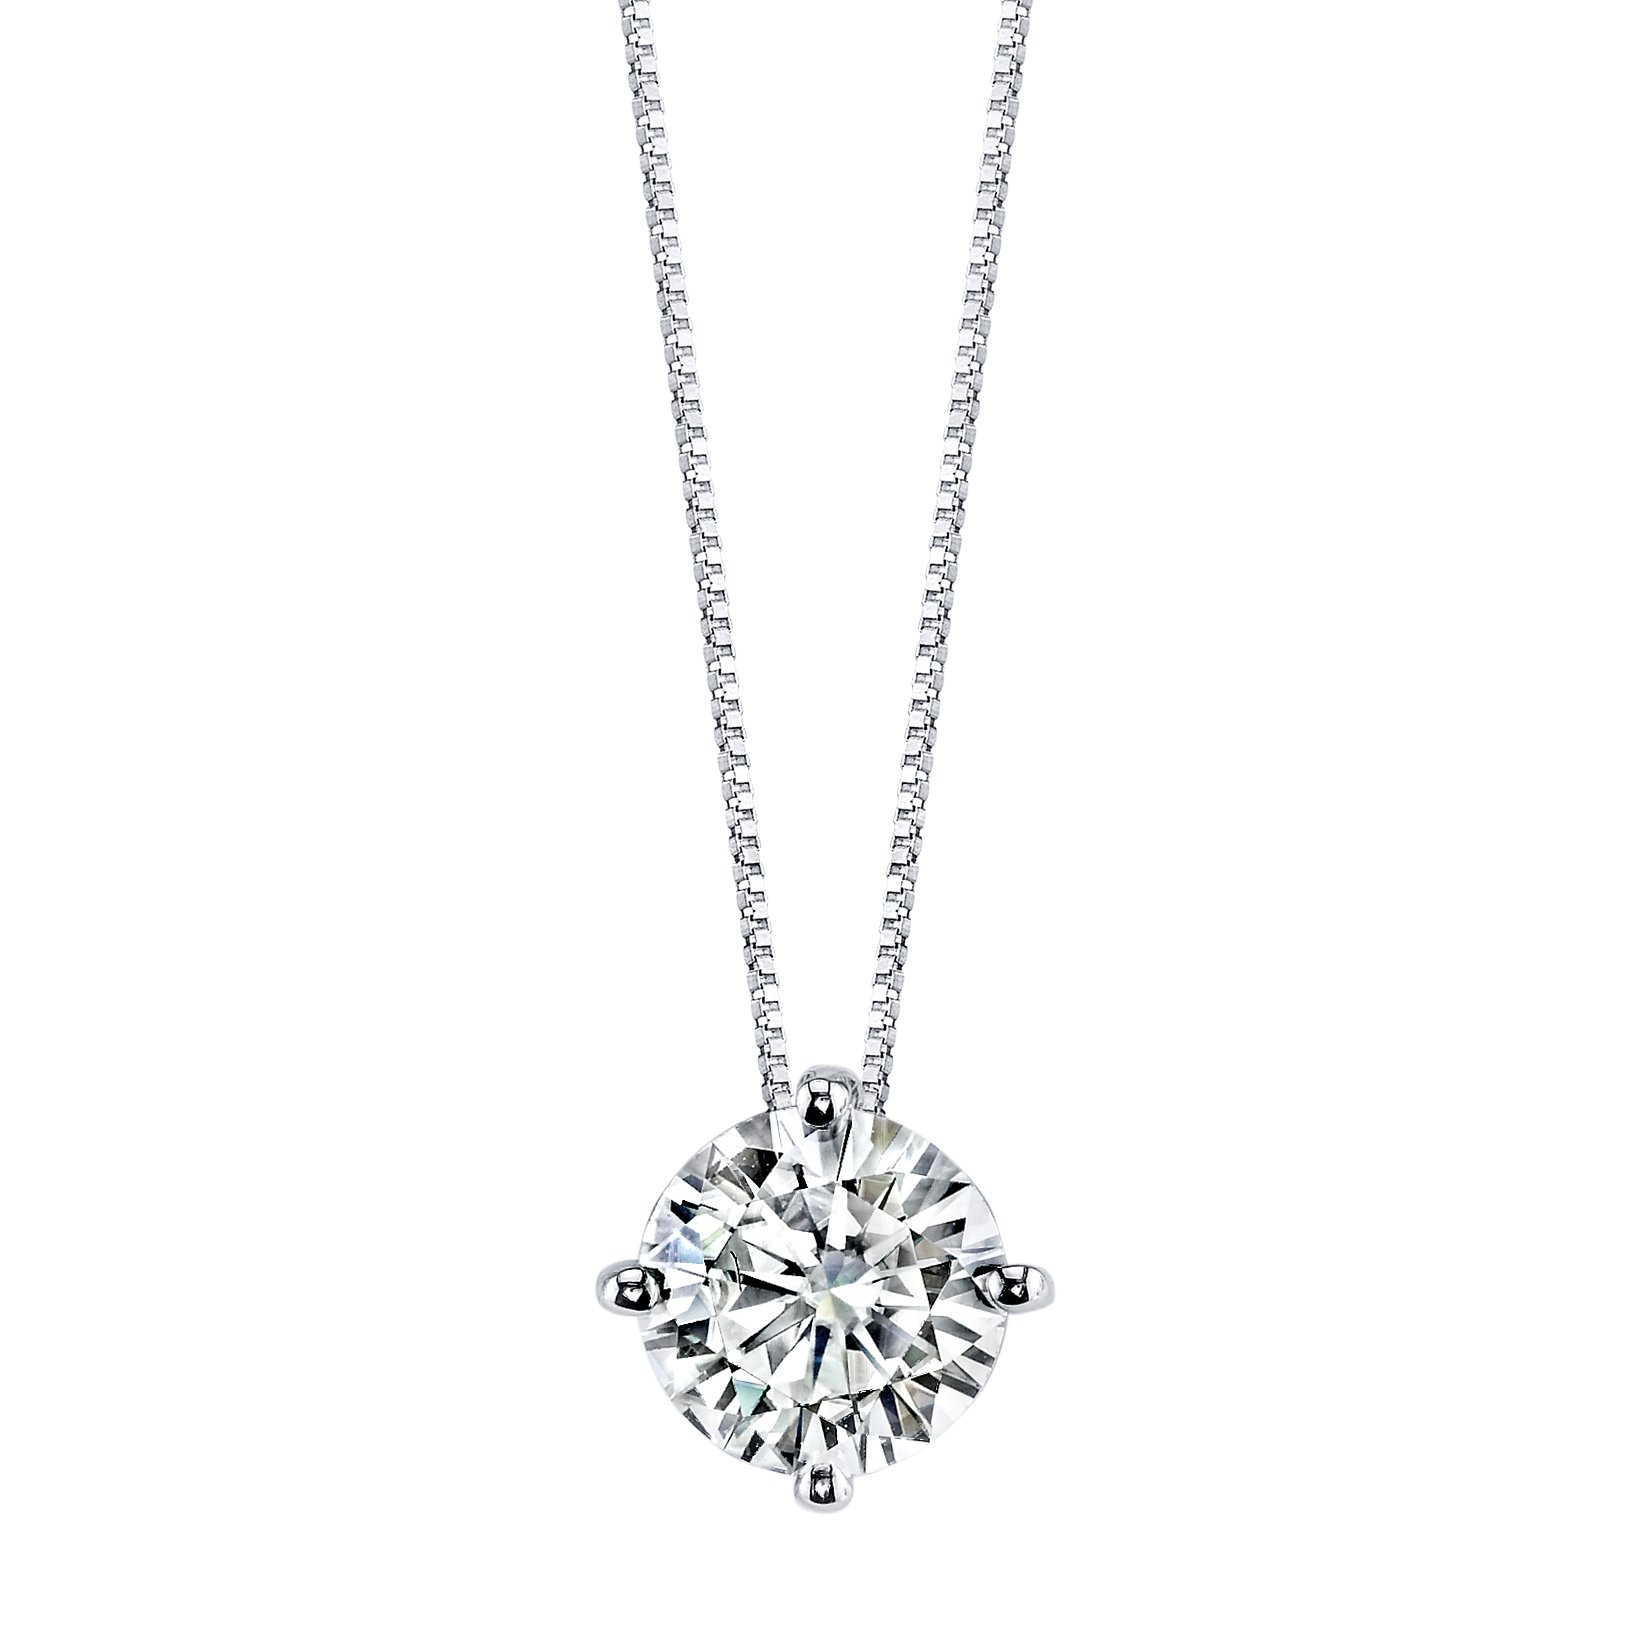 Round Brilliant Cut 7.5mm Moissanite Pendant Necklace, 1.50ct DEW By Charles & Colvard